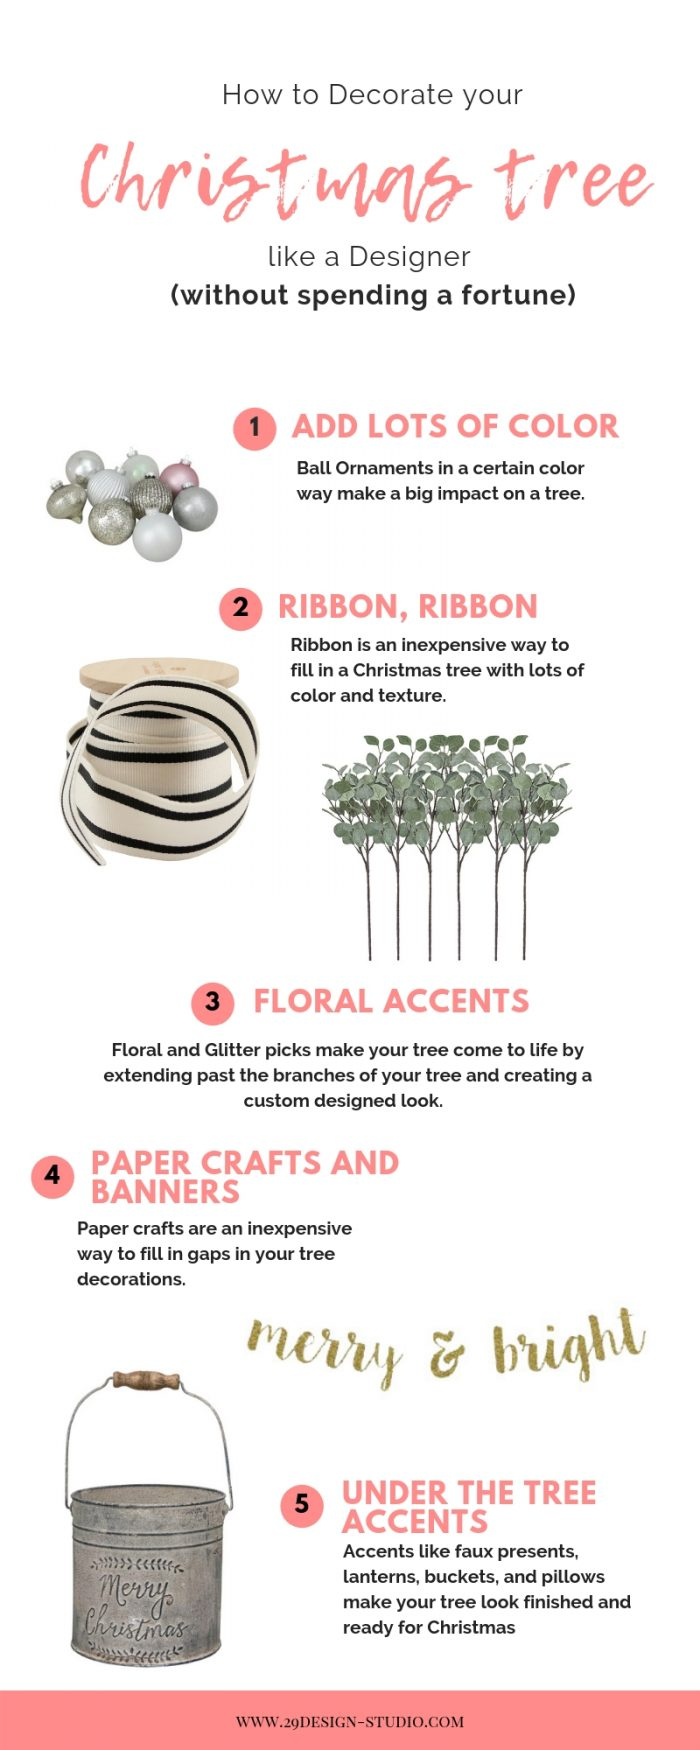 The Beginner's Guide to Decorating a Christmas Tree like a Professional Designer….(on a Budget)